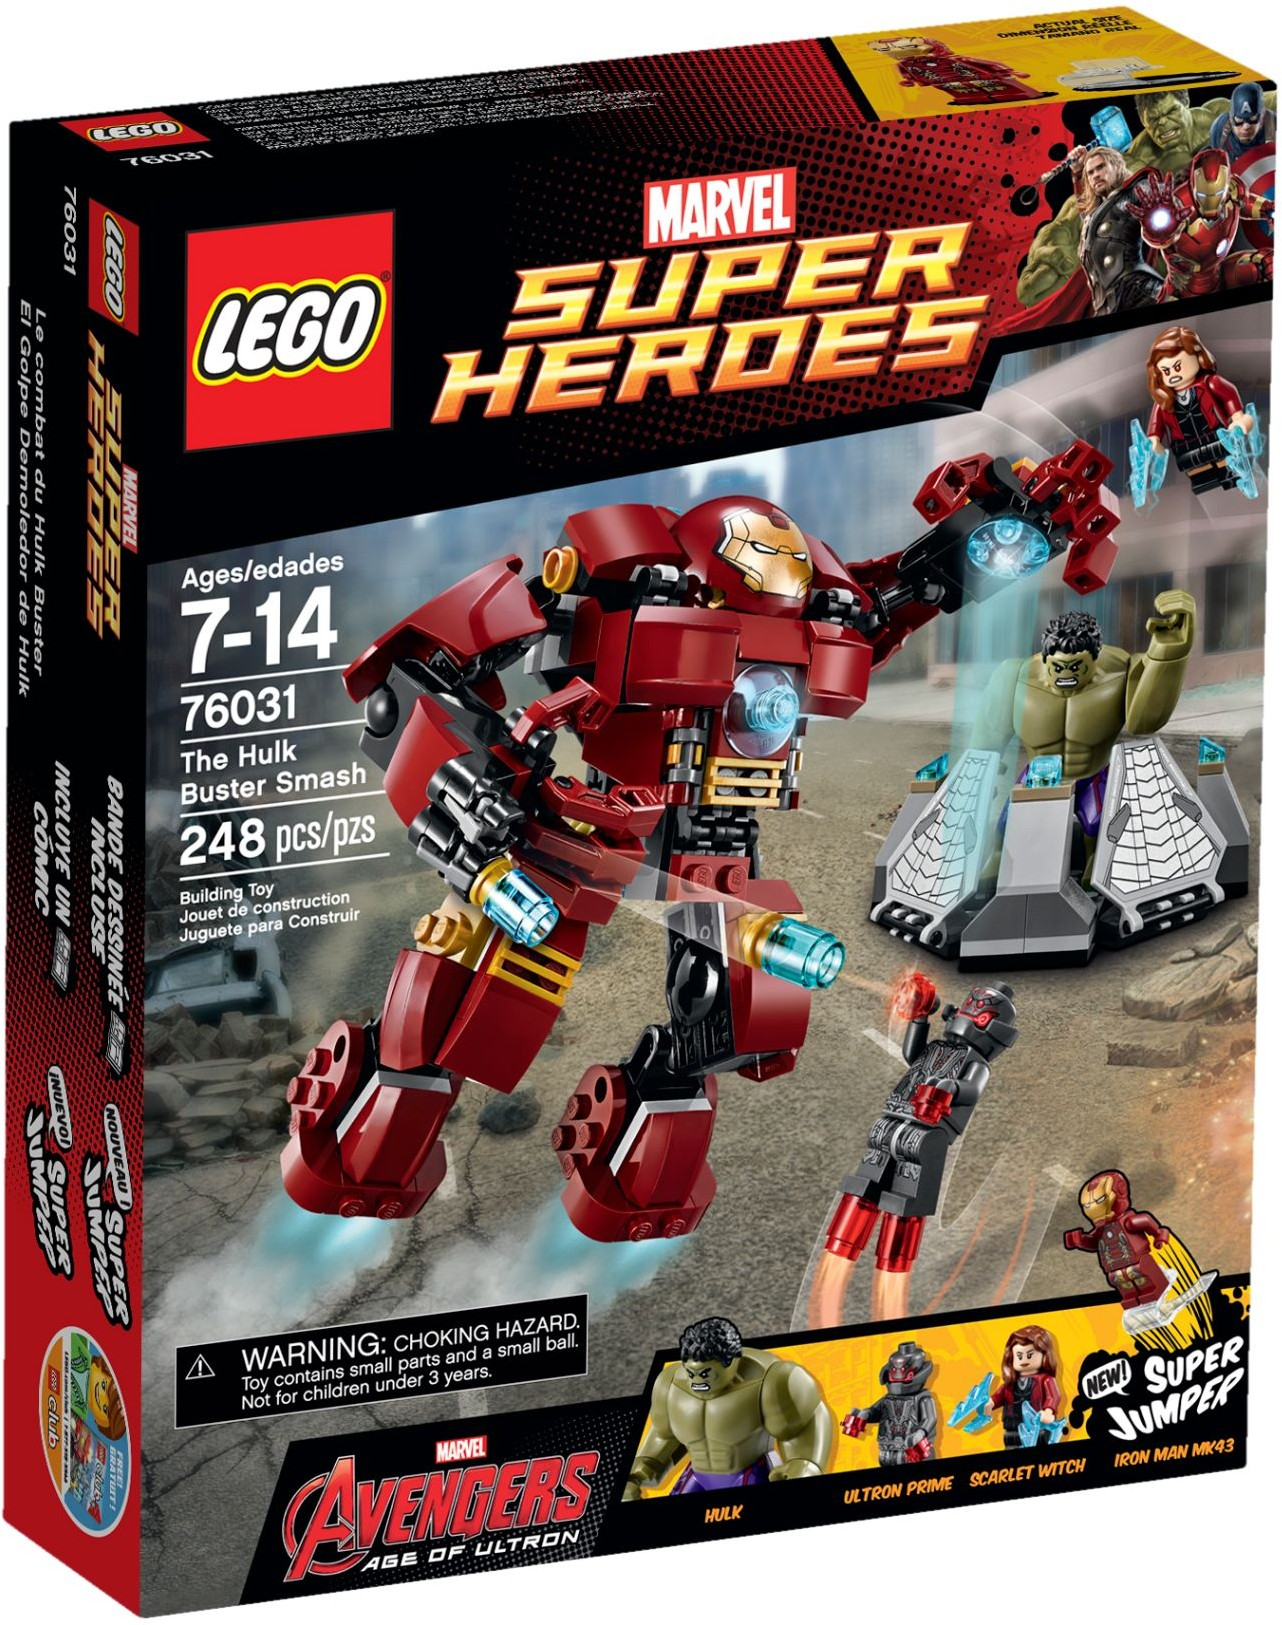 LEGO 76031 - Super Heroes - The Hulk Buster Smash